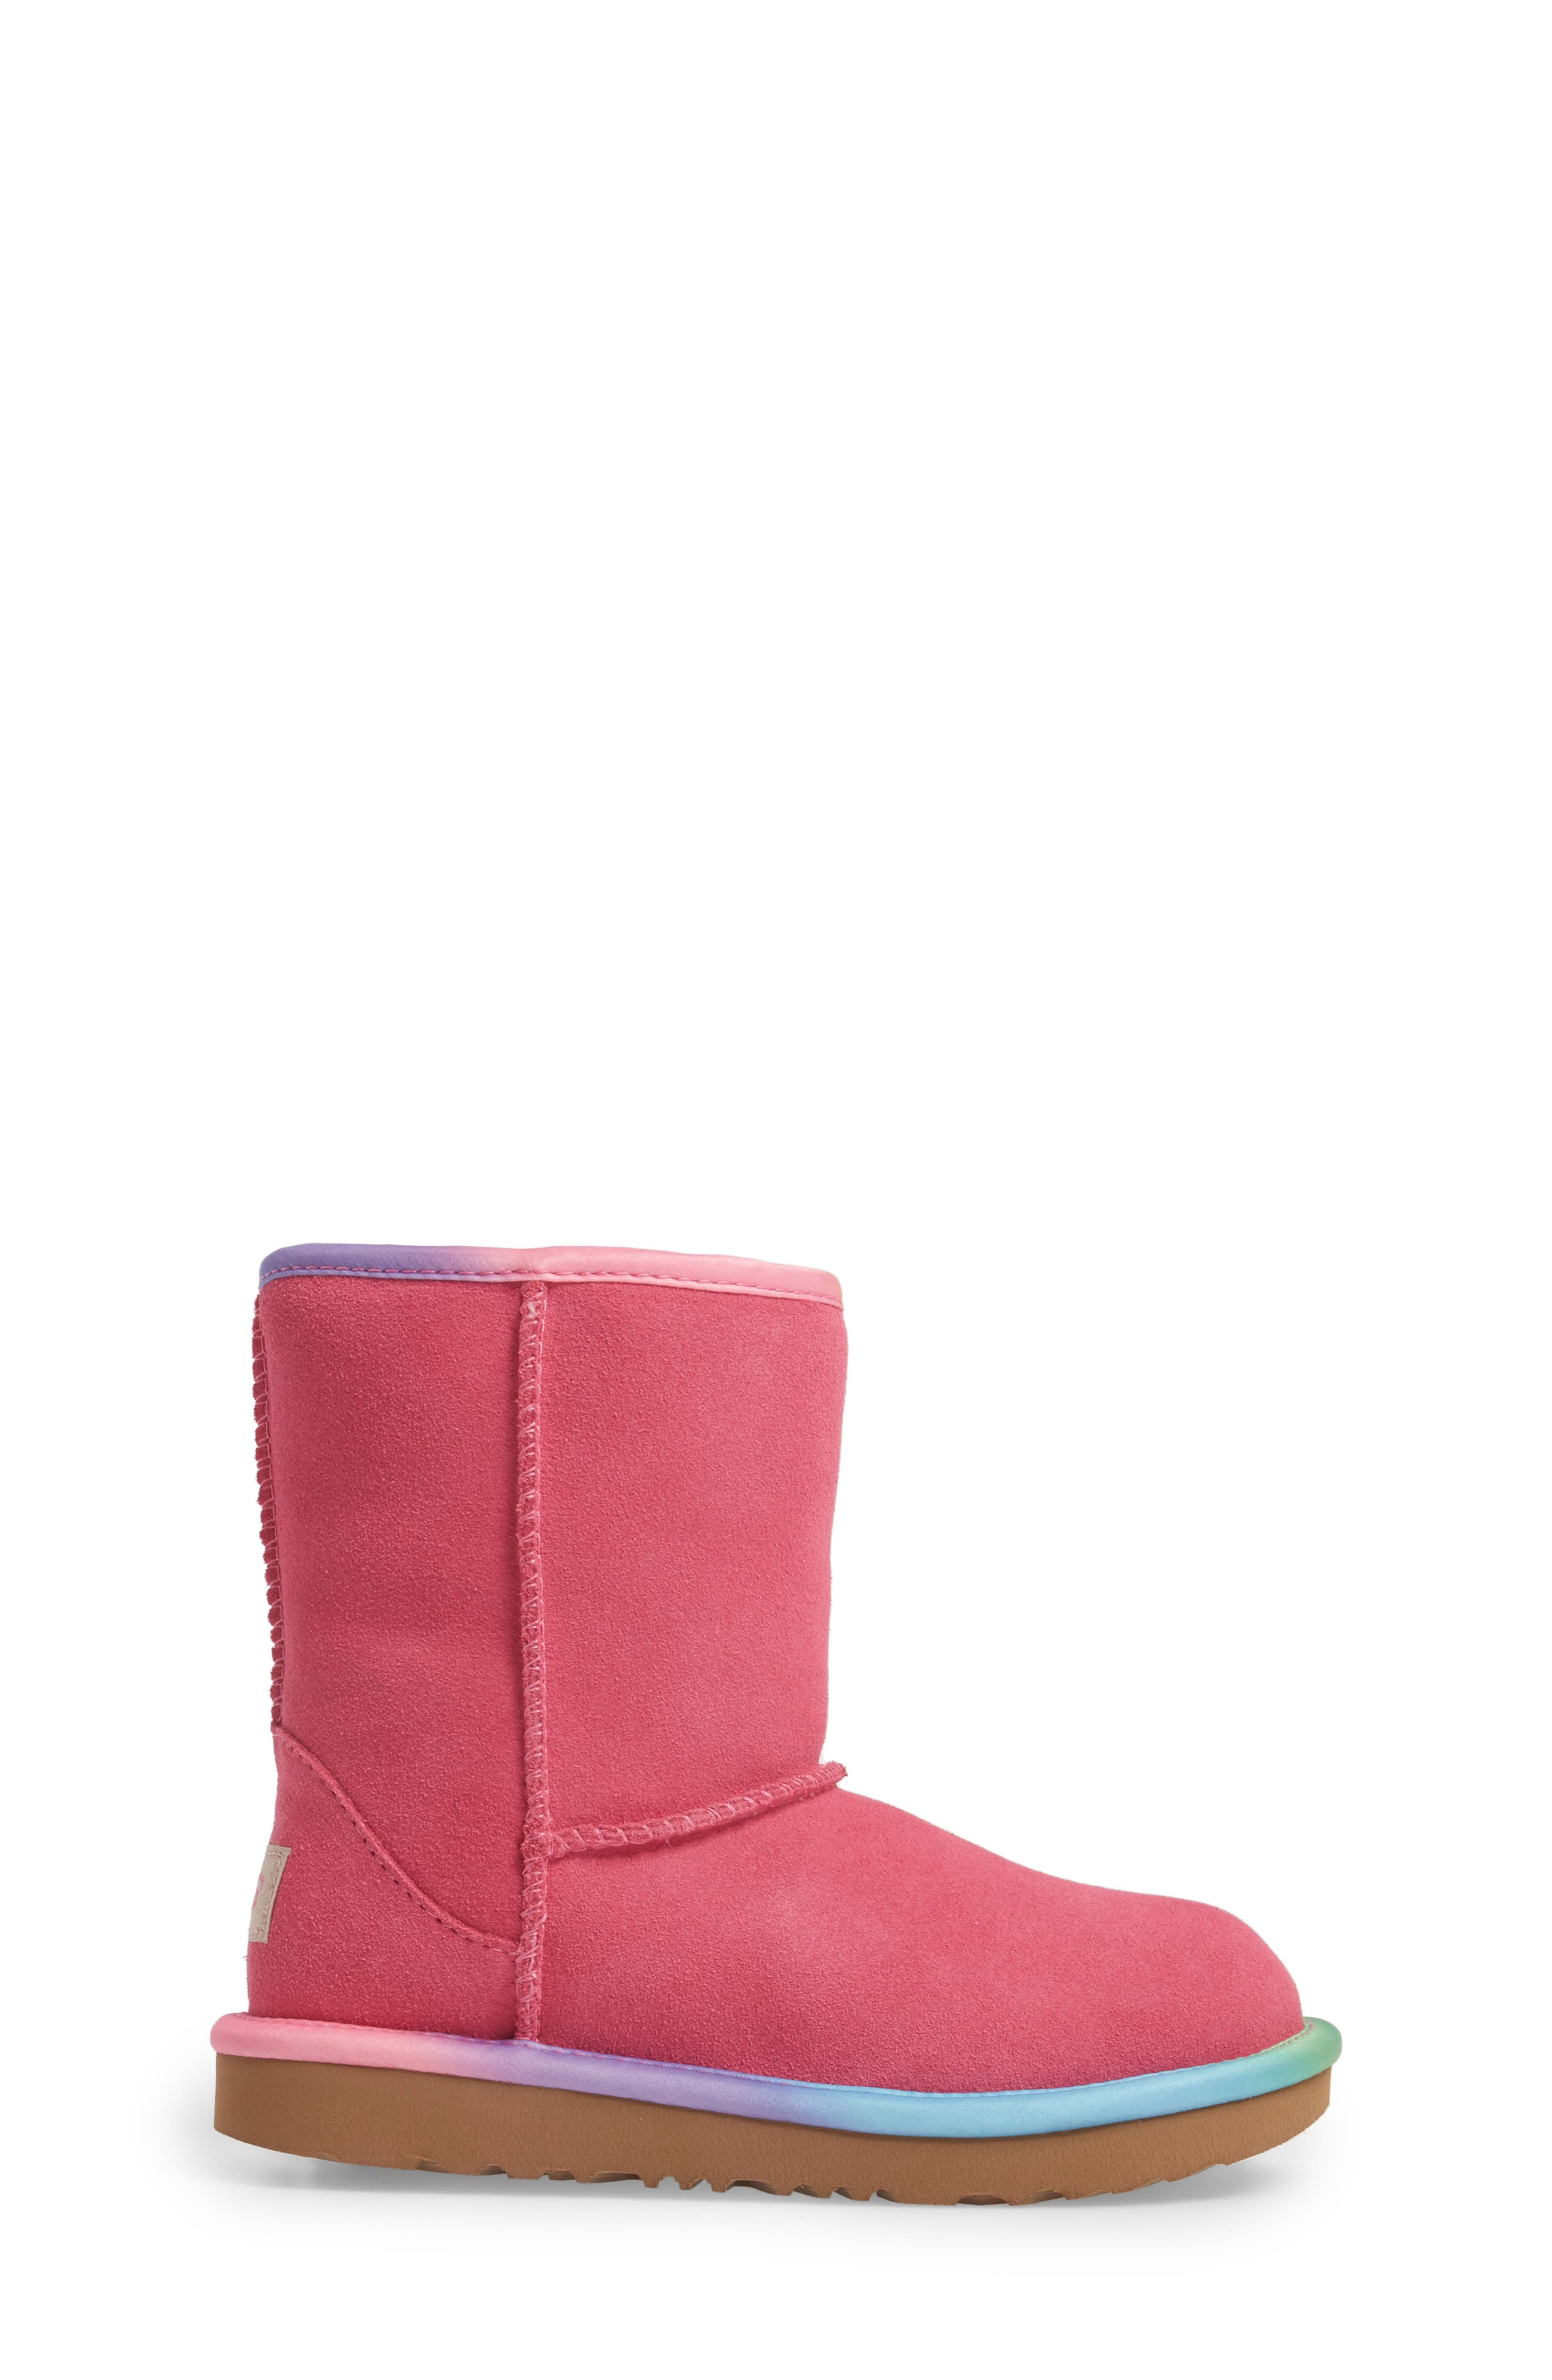 Alternate Image 3  - UGG® Classic Short II Water-Resistant Genuine Shearling Rainbow Boot (Walker, Toddler, Little Kid & Big Kid)